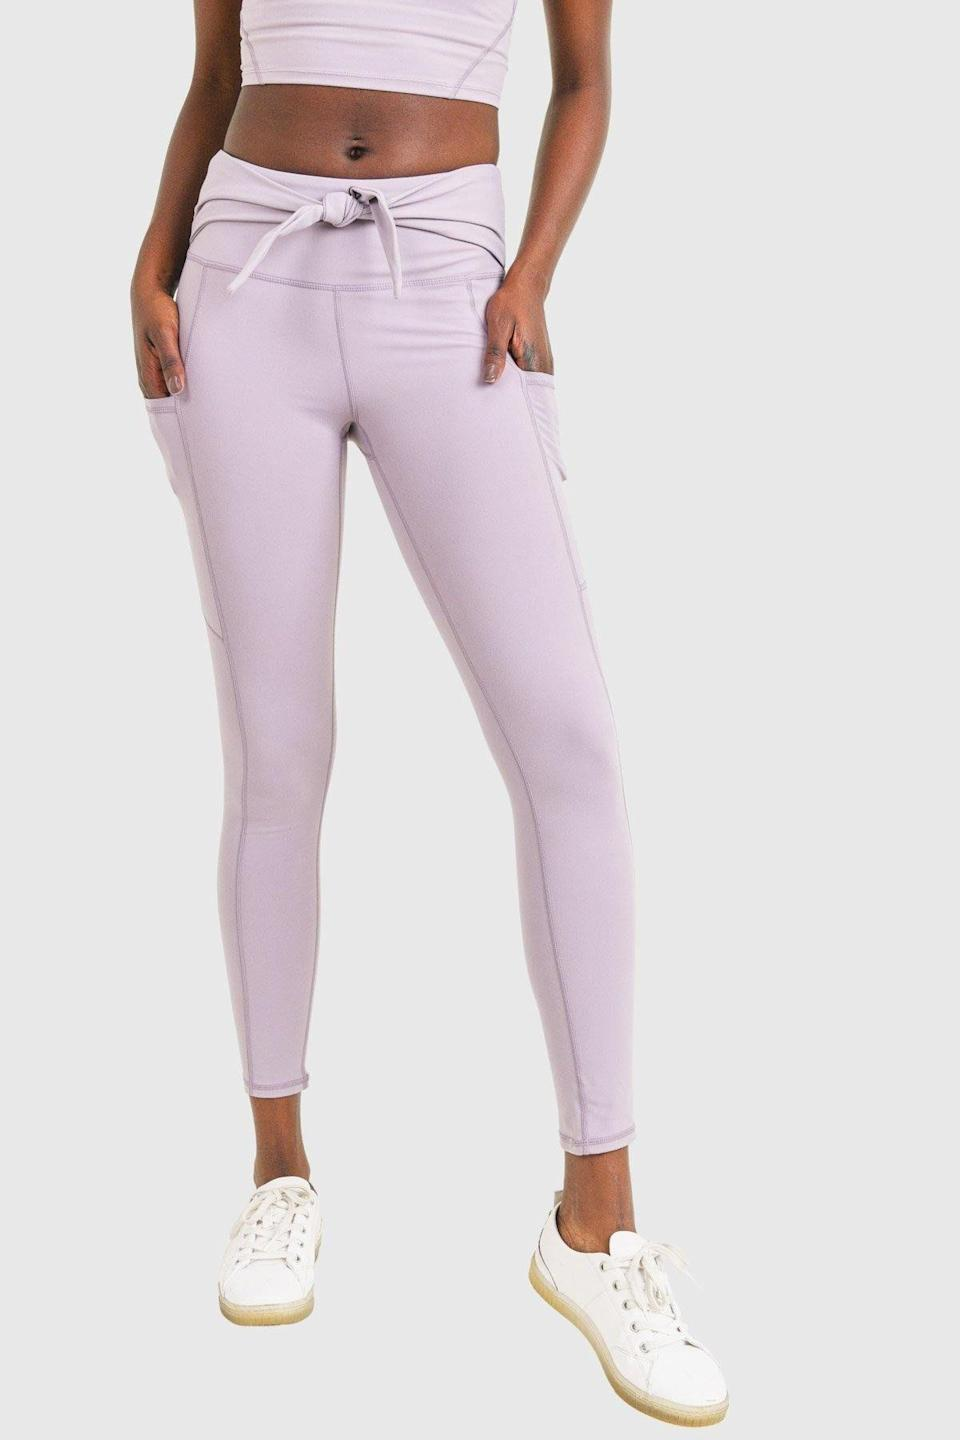 """<p><strong>Mono B</strong></p><p>mymonob.com</p><p><strong>$39.00</strong></p><p><a href=""""https://www.mymonob.com/collections/leggings/products/high-rise-cleo-leggings?variant=39447981064350"""" rel=""""nofollow noopener"""" target=""""_blank"""" data-ylk=""""slk:SHOP NOW"""" class=""""link rapid-noclick-resp"""">SHOP NOW</a></p><p>In collaboration with LAPCOS skincare in the previous slide, clothing brand Mono B is also donating 10 percent of sales to <a href=""""https://www.asianmhc.org/"""" rel=""""nofollow noopener"""" target=""""_blank"""" data-ylk=""""slk:The Asian Mental Health Collective"""" class=""""link rapid-noclick-resp"""">The Asian Mental Health Collective</a> and offering 20 percent off with code HEREFORYOU20 on its range of cute and colorful athleisure. We're adding these flattering tie-waist leggings to our cart.</p>"""